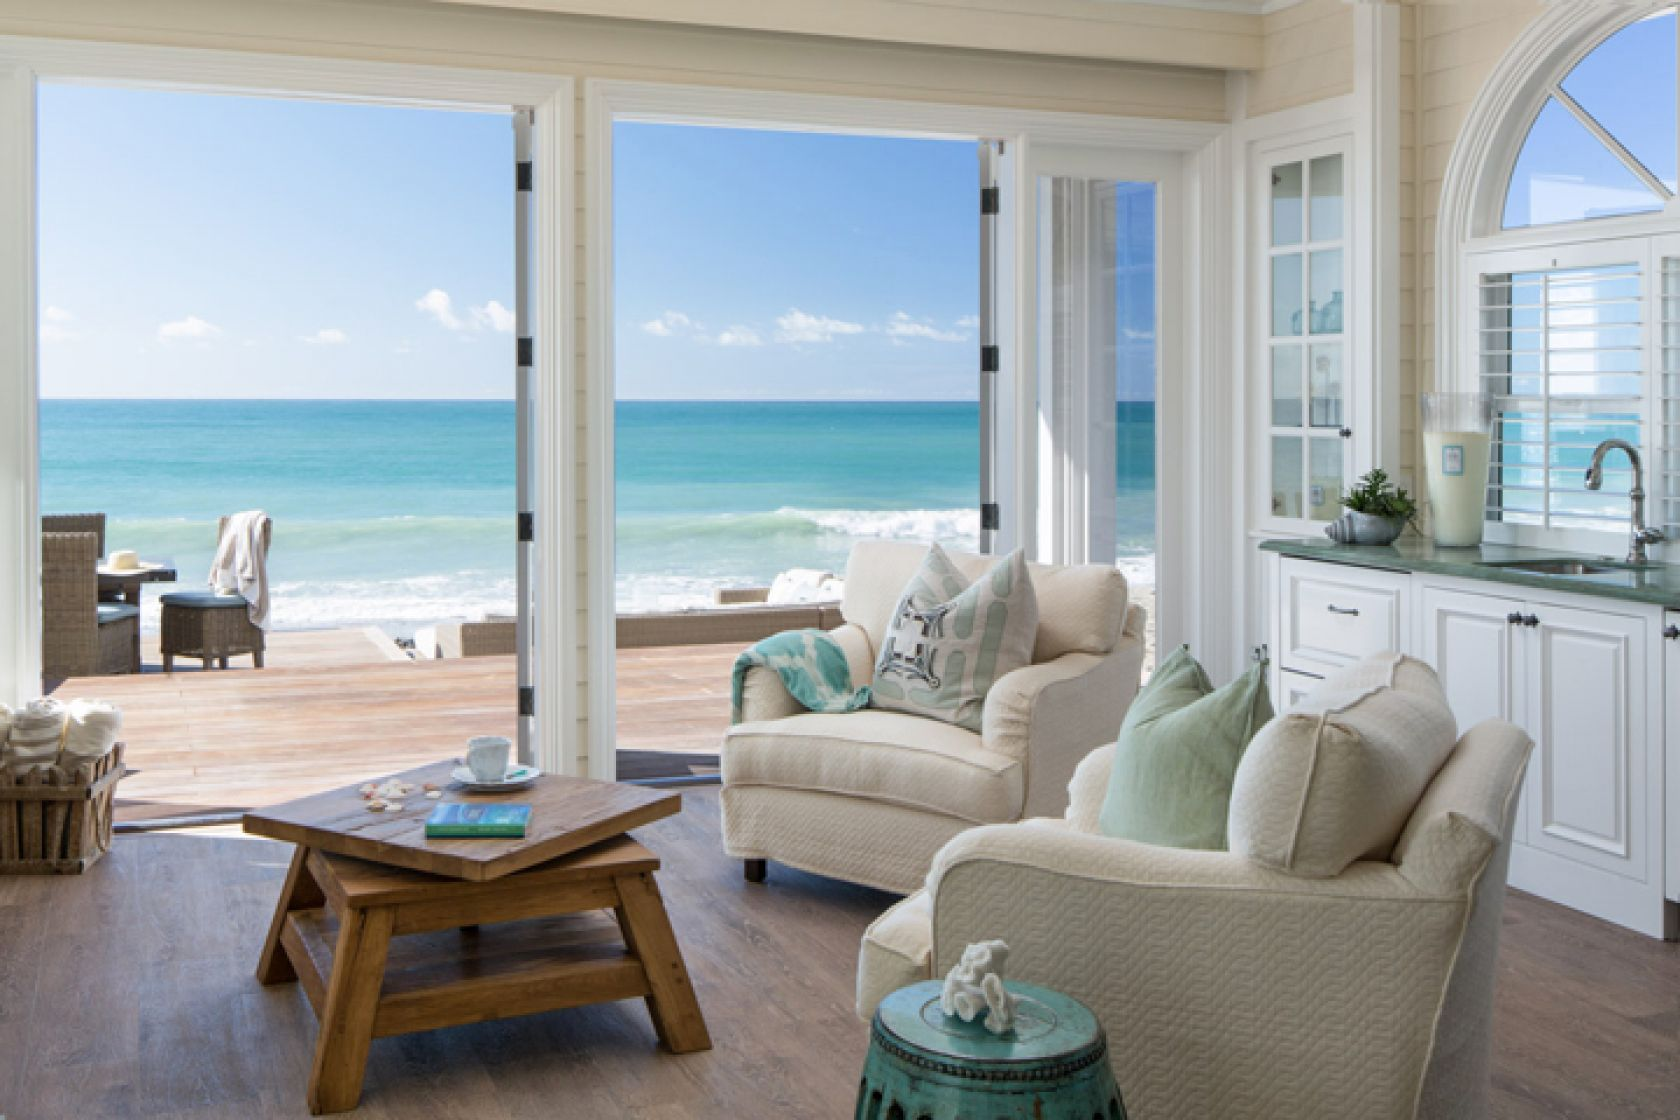 Dana Point, California Beach House | Beach House | Pinterest ...